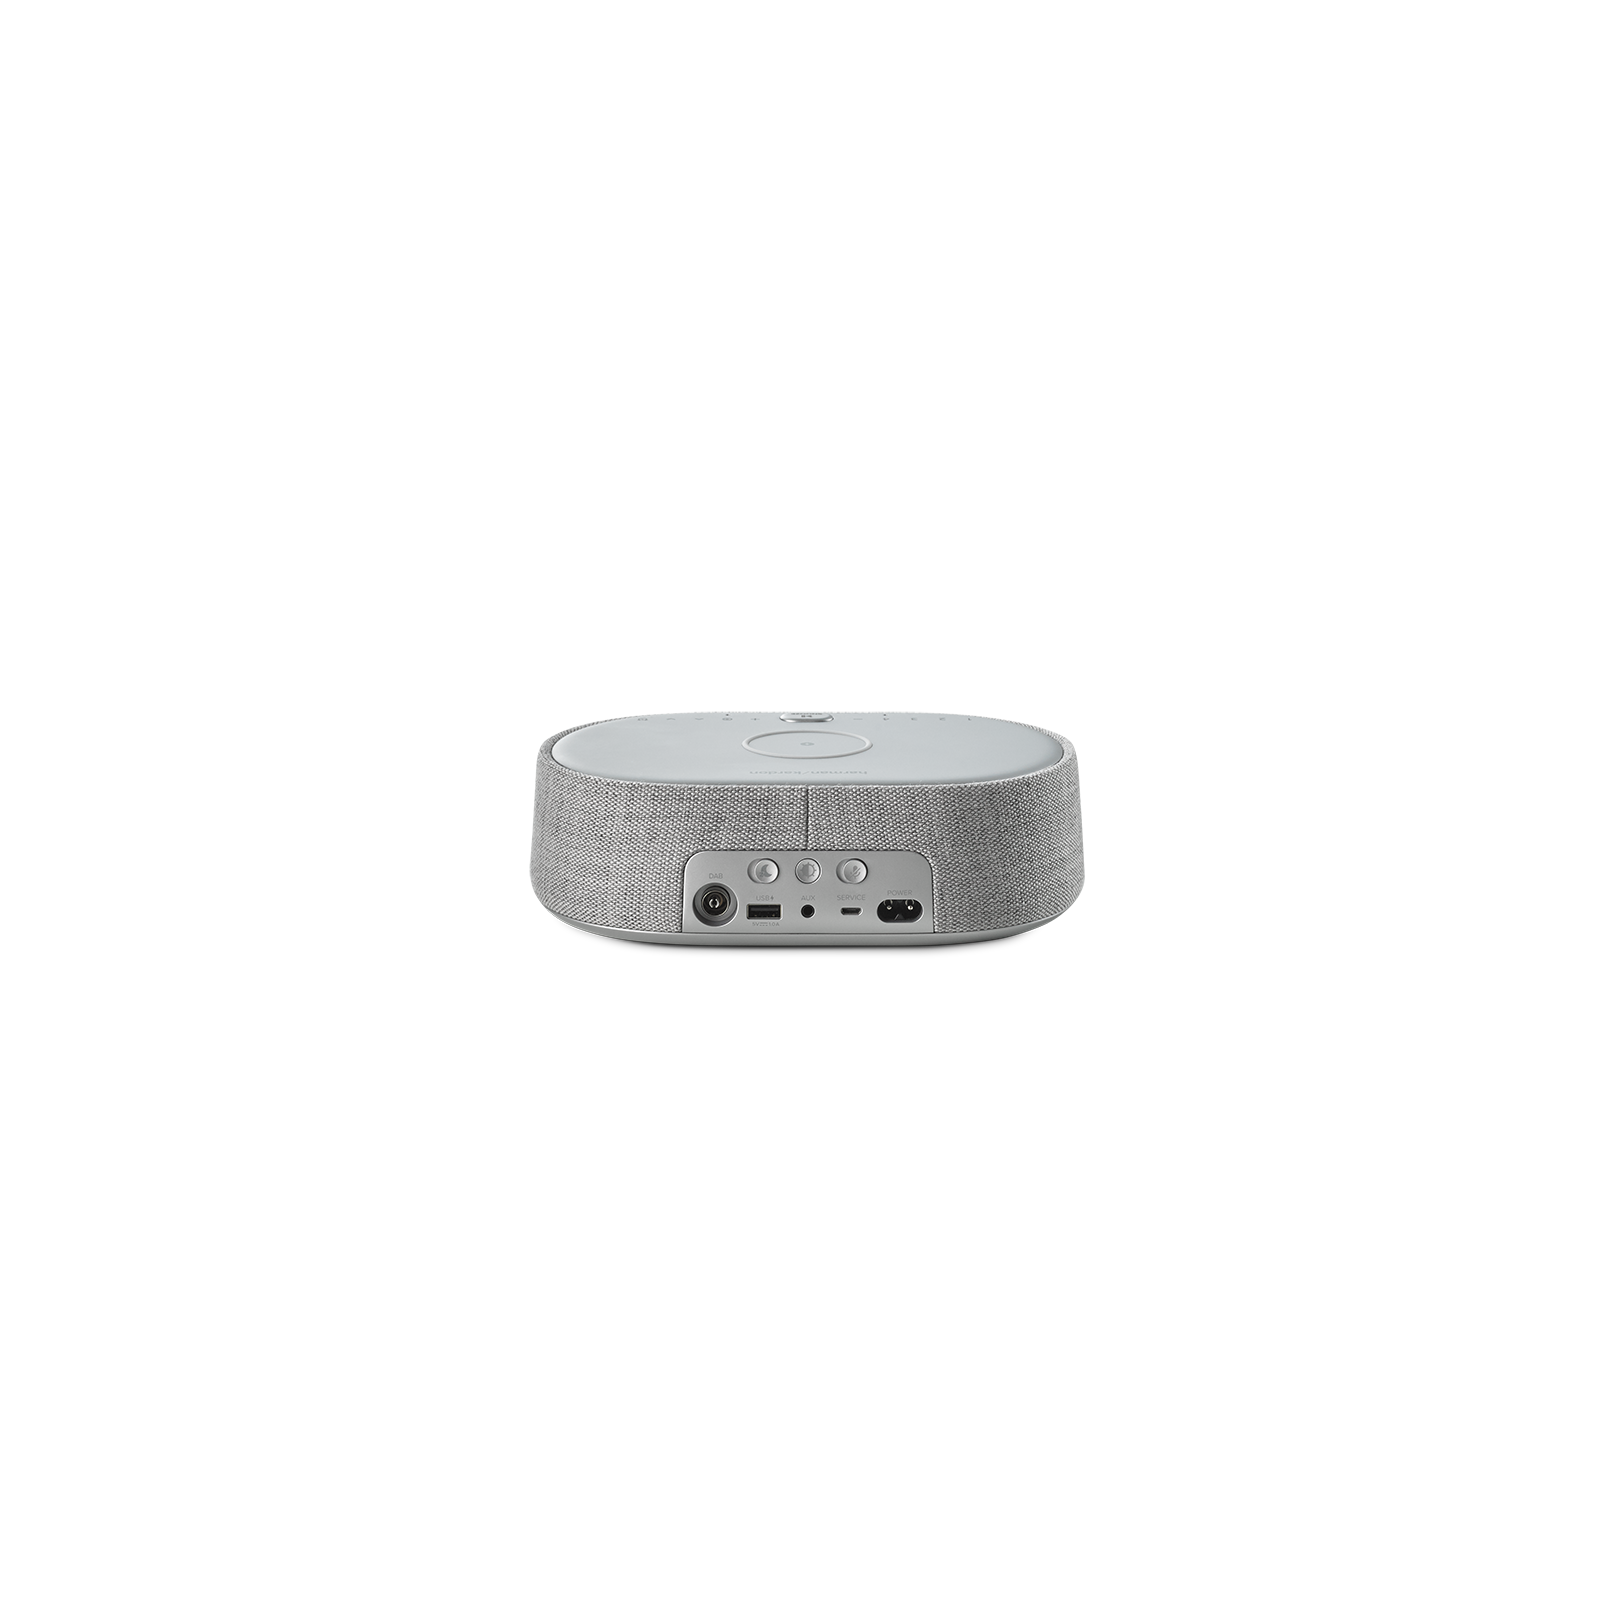 Harman Kardon Citation Oasis DAB - Grey - Voice-controlled speaker with DAB/DAB+ radio and wireless phone charging - Back